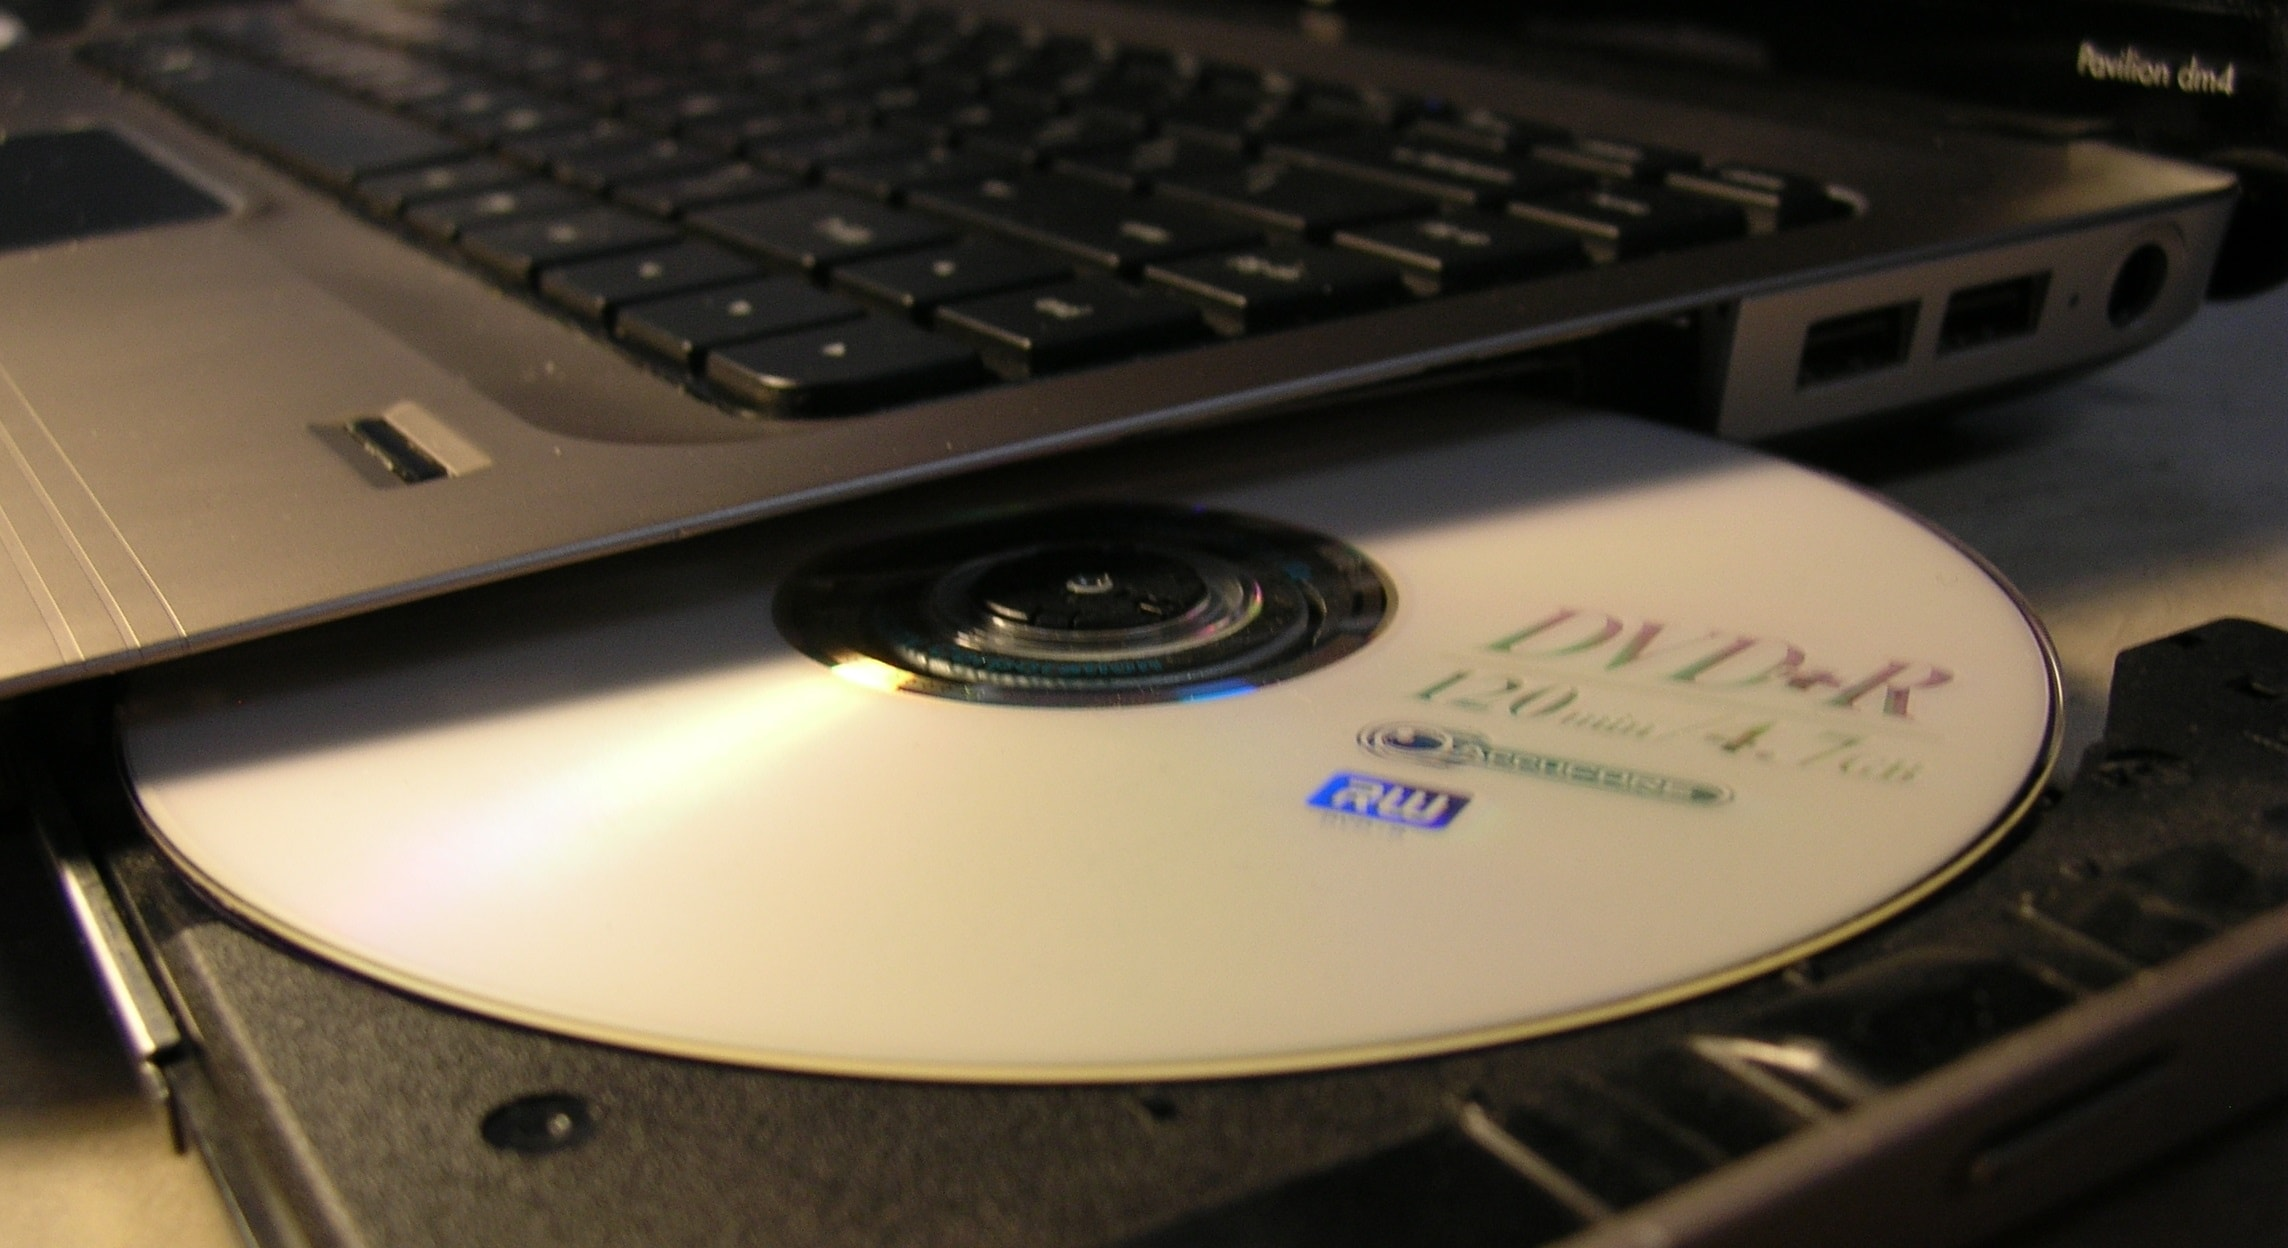 How To Make A Bootable Cd Dvd Amp Blu Ray Disc